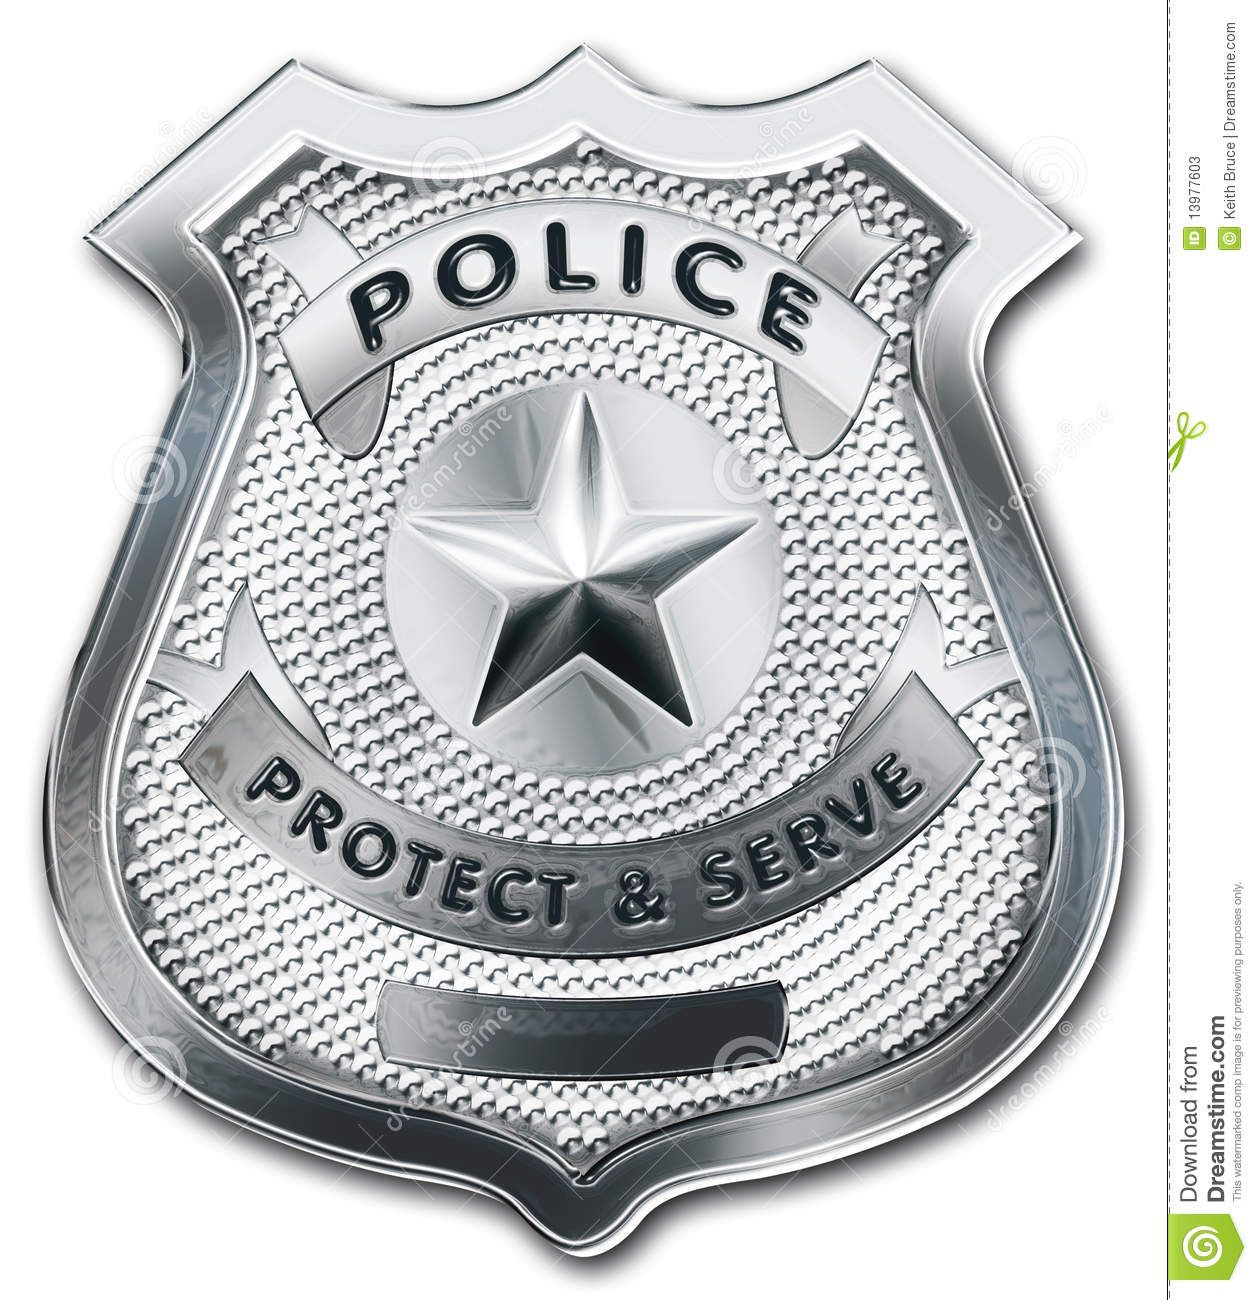 The police badge was the prop that symbolized good and bad.